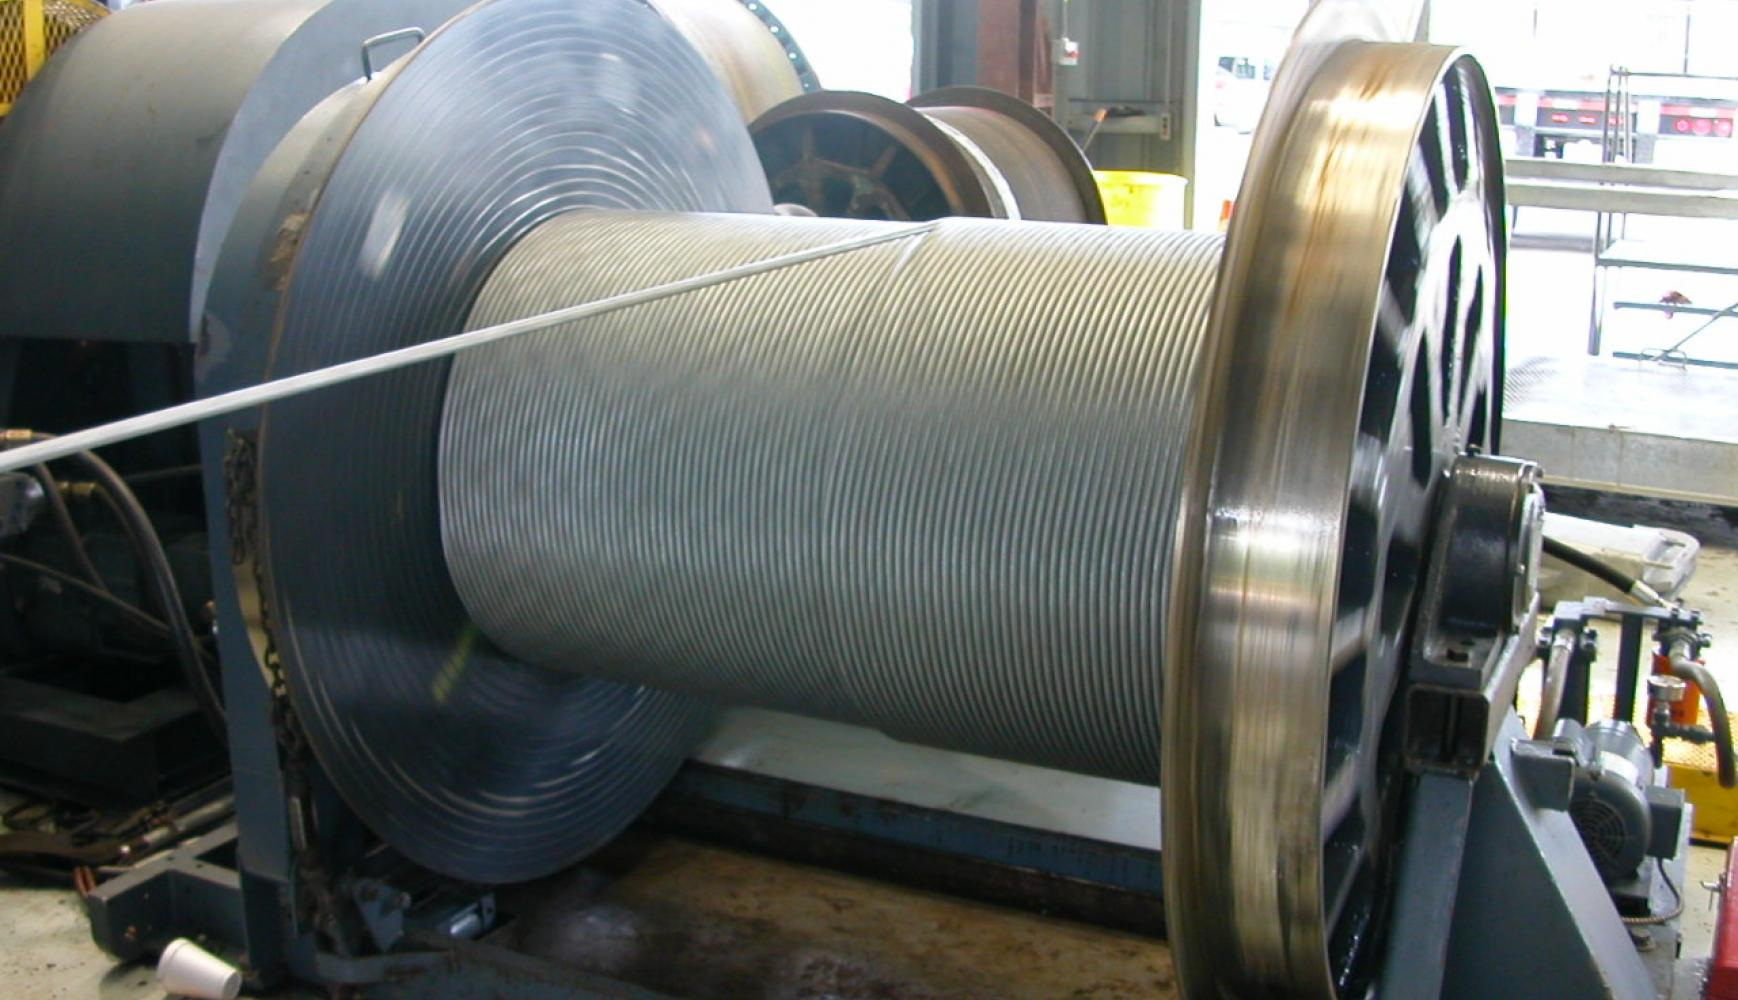 Spooling Winch, winch instrumentation, cable tension monitoring